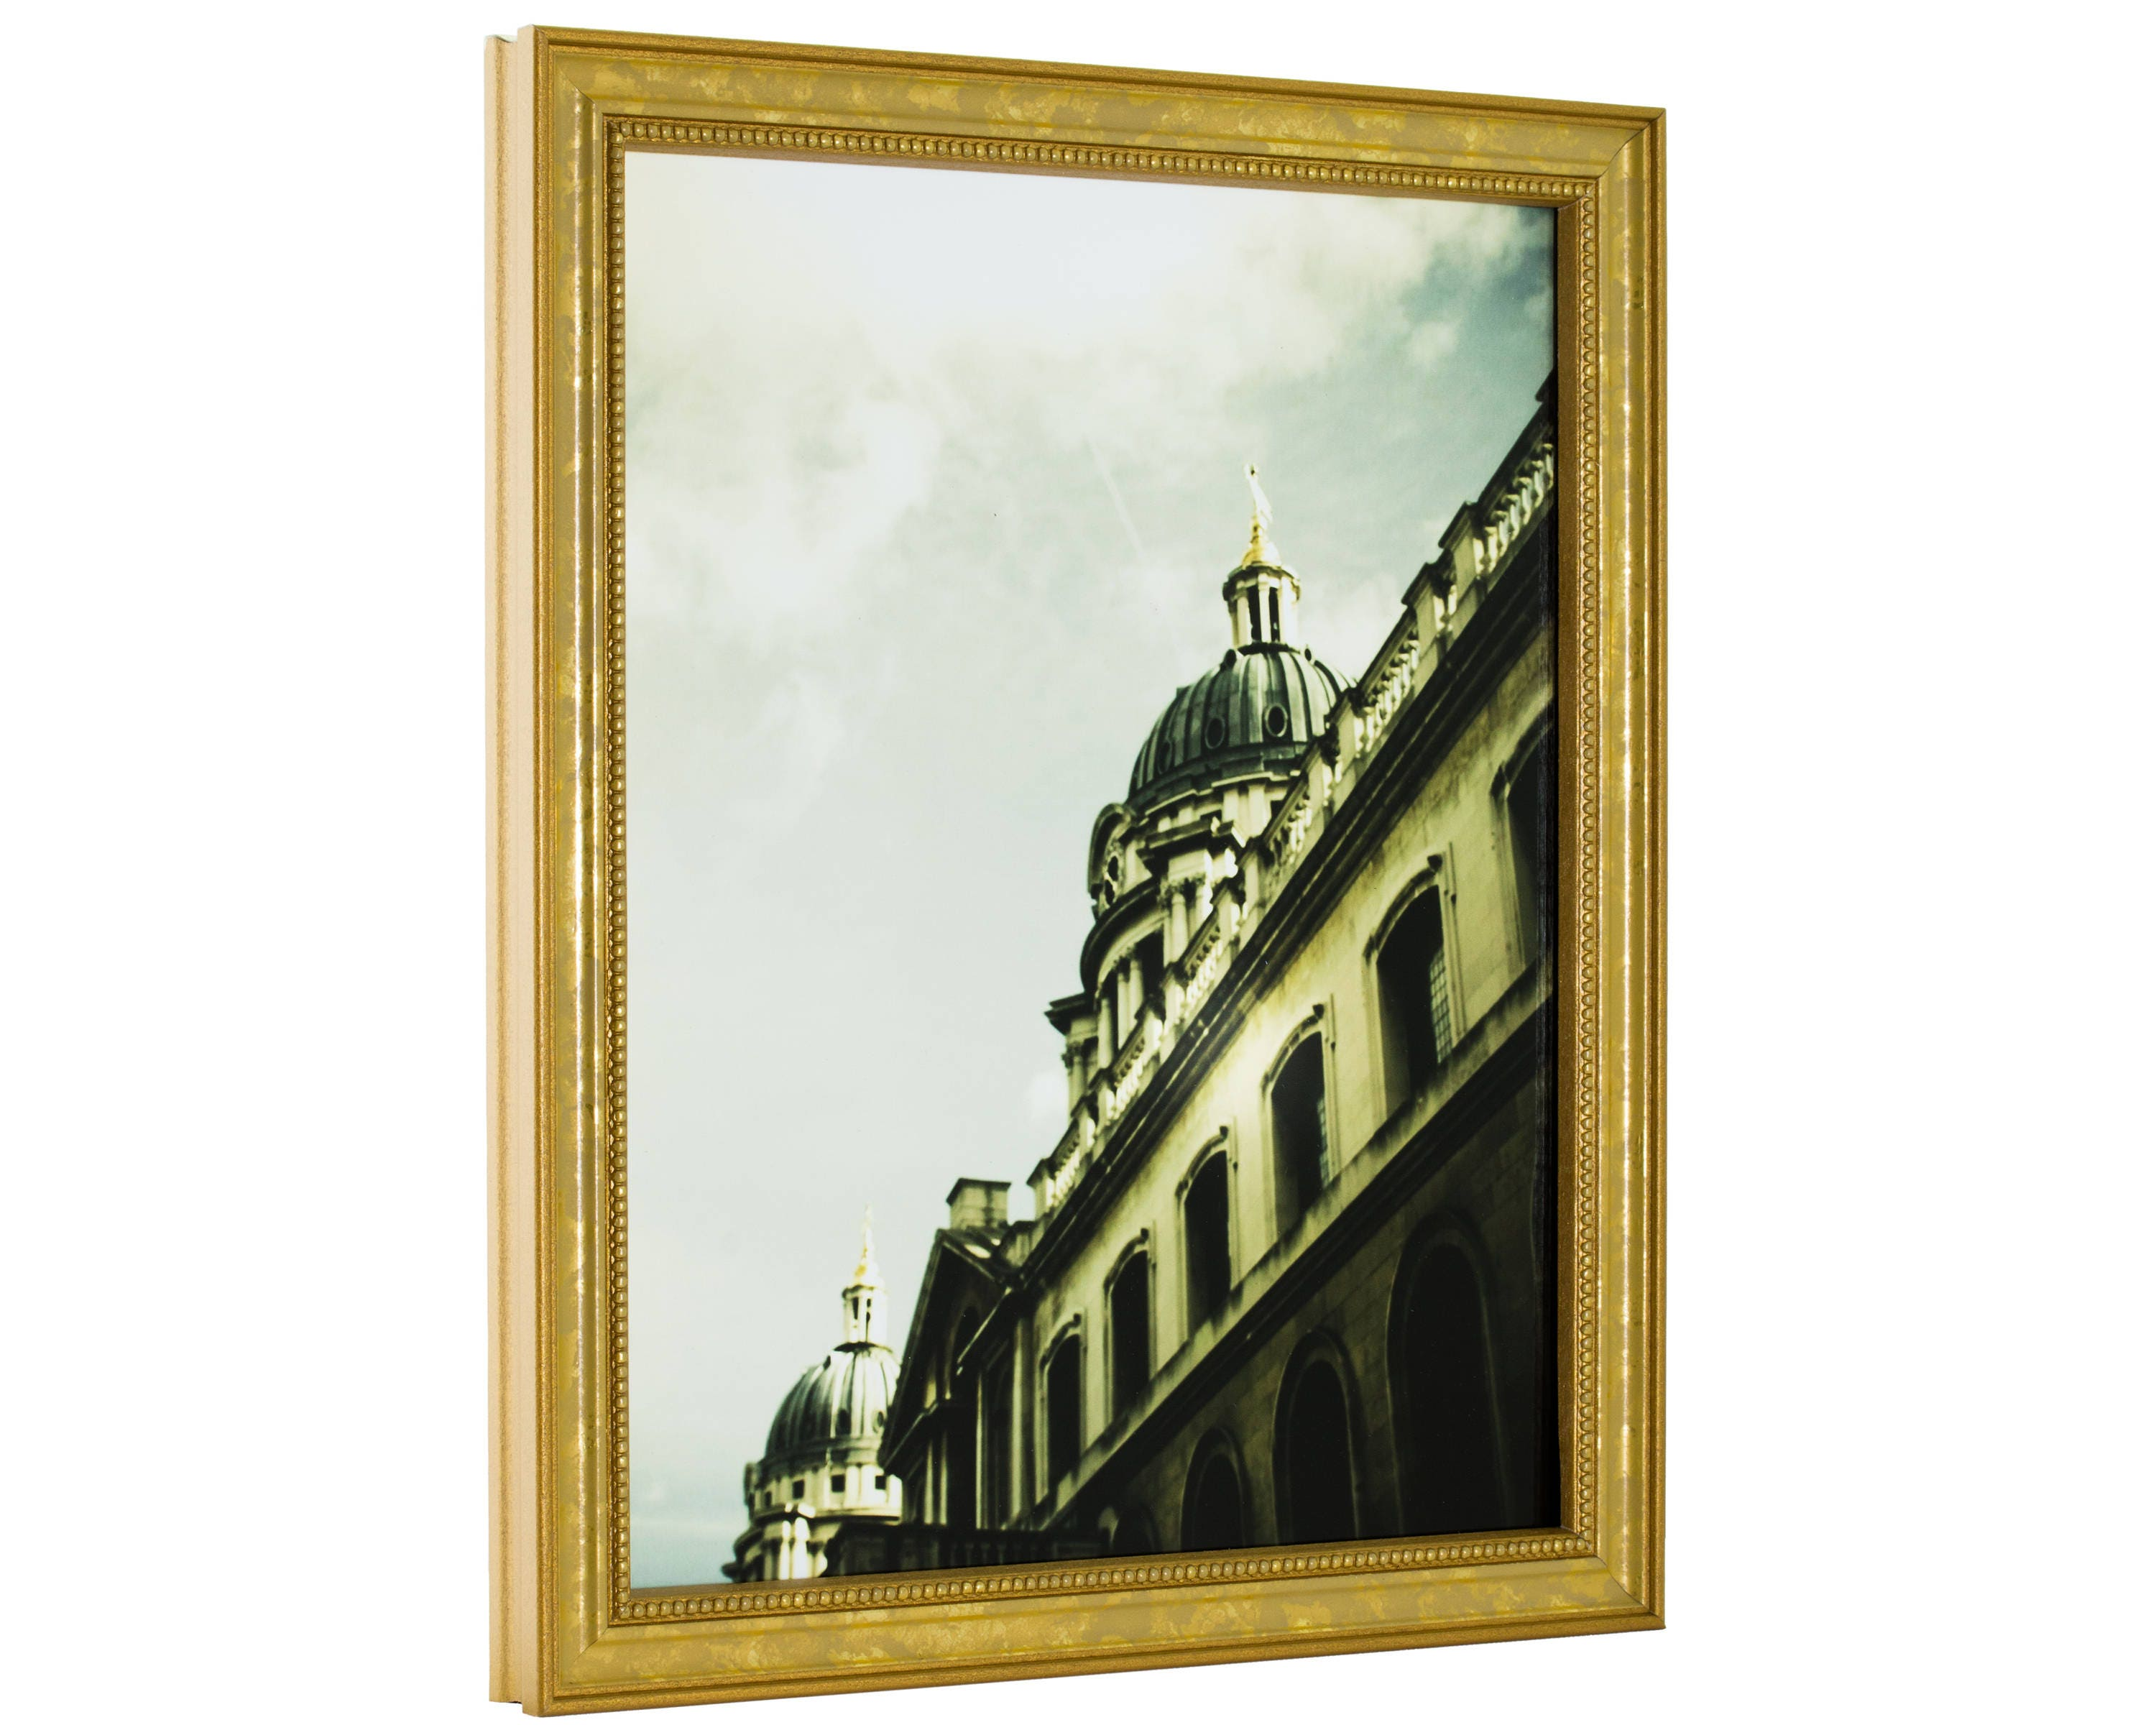 Craig frames 18x24 inch aged gold picture frame stratton zoom jeuxipadfo Gallery